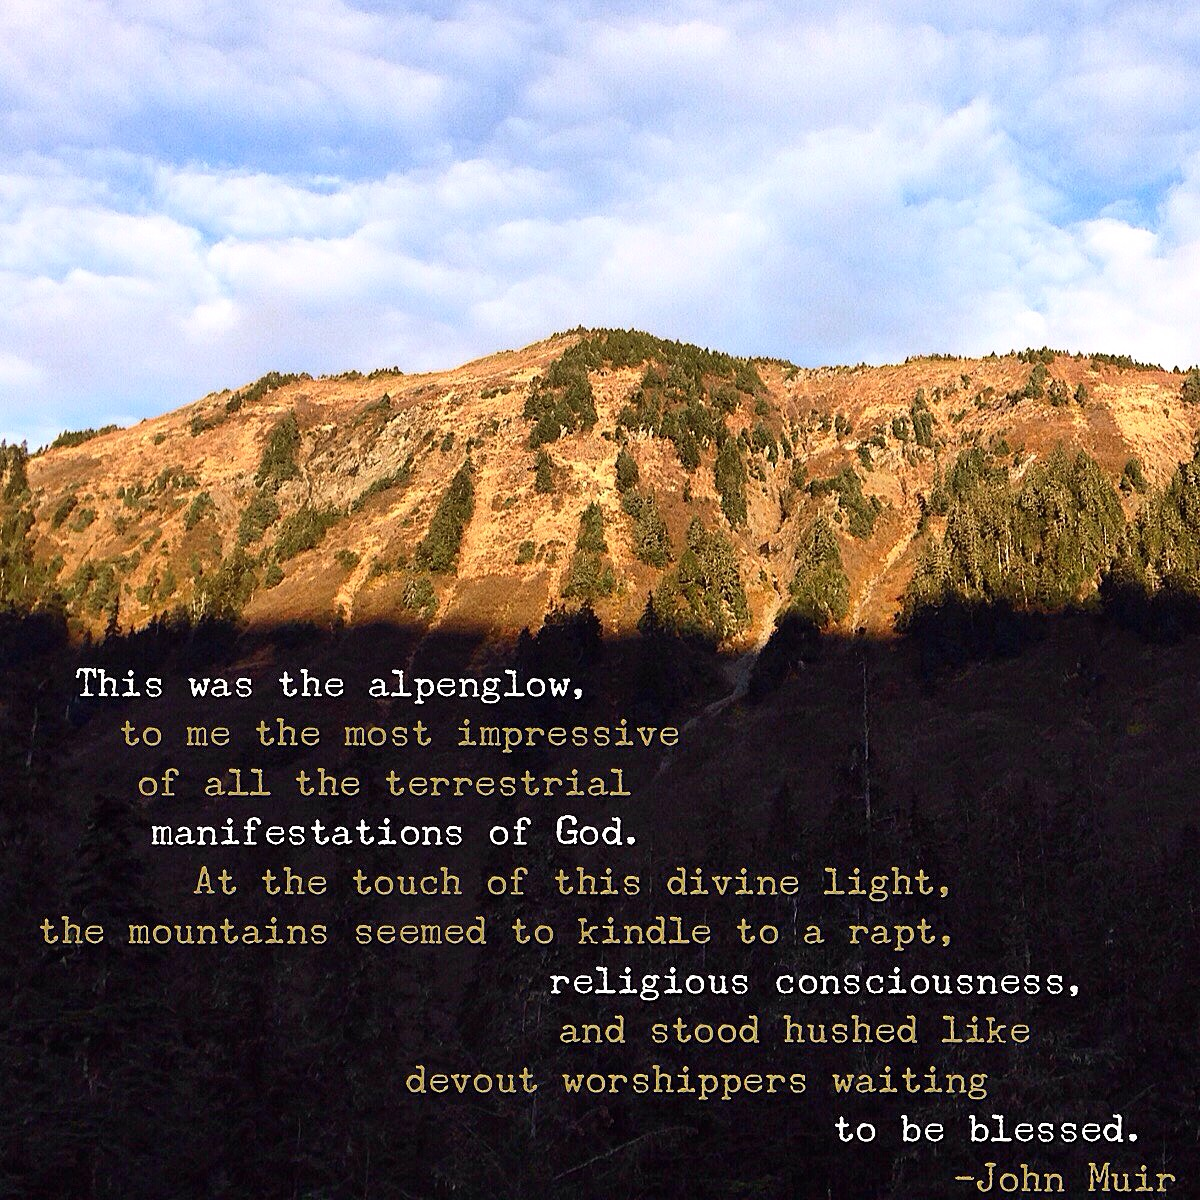 Alpenglow up at the Eaglecrest Ski Area. John Muir quote.